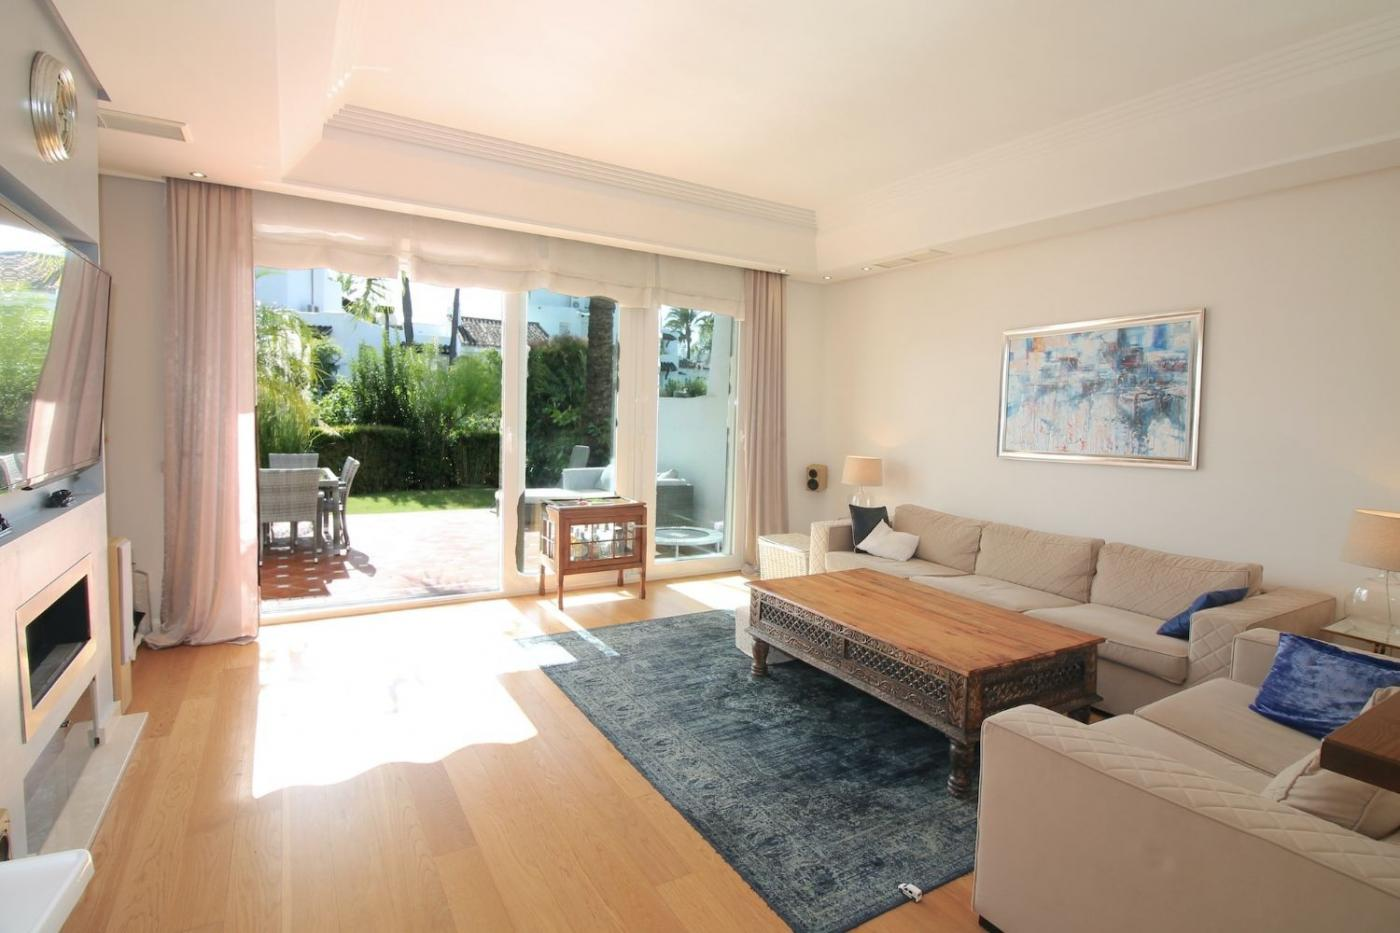 3 Bedroom Town House for Sale in Estepona